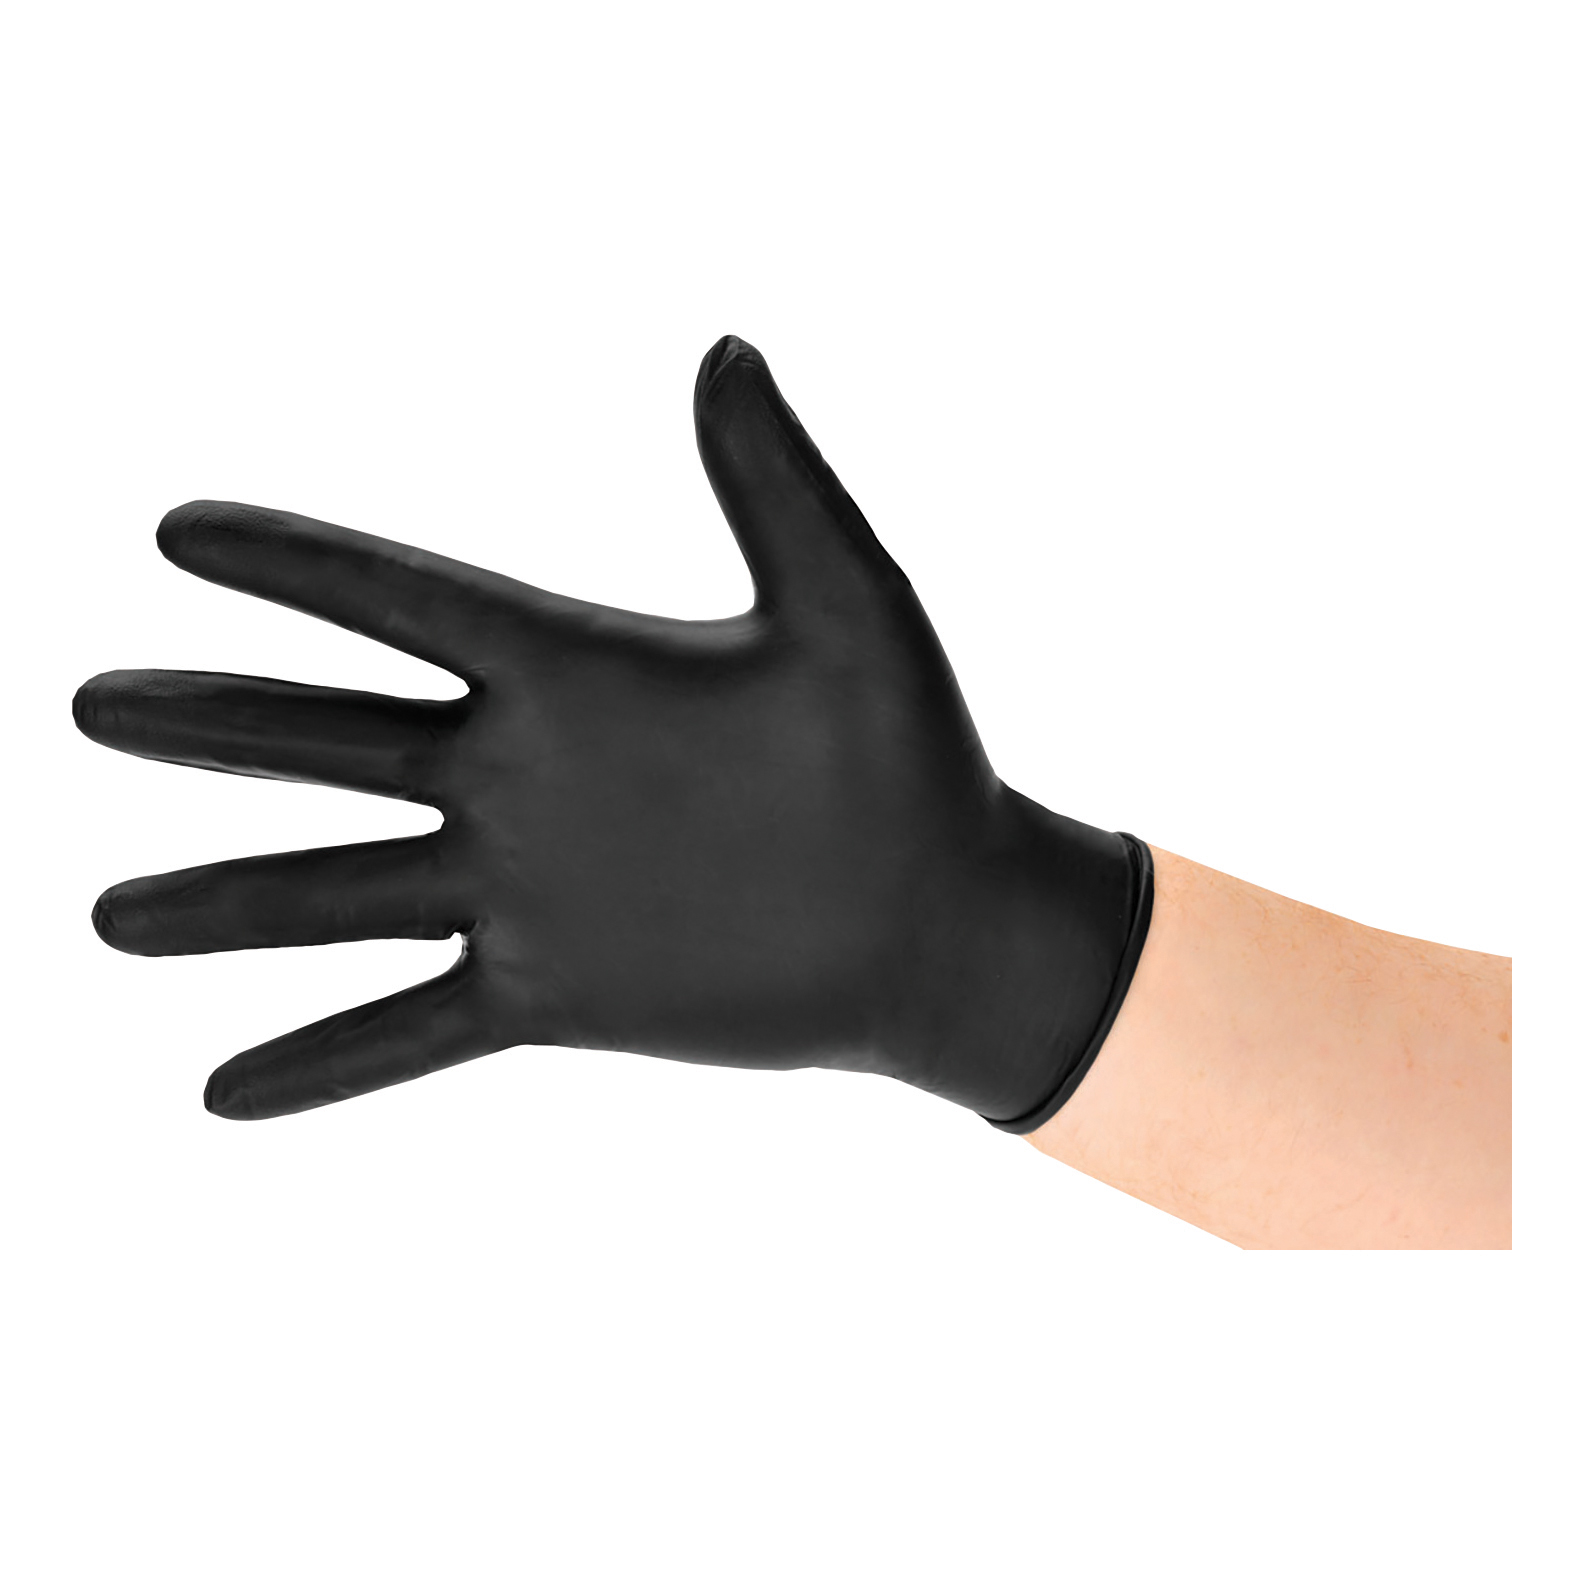 Nitrile Gloves Abrasion-resistance Rolled-cuff Large Black Pack 100